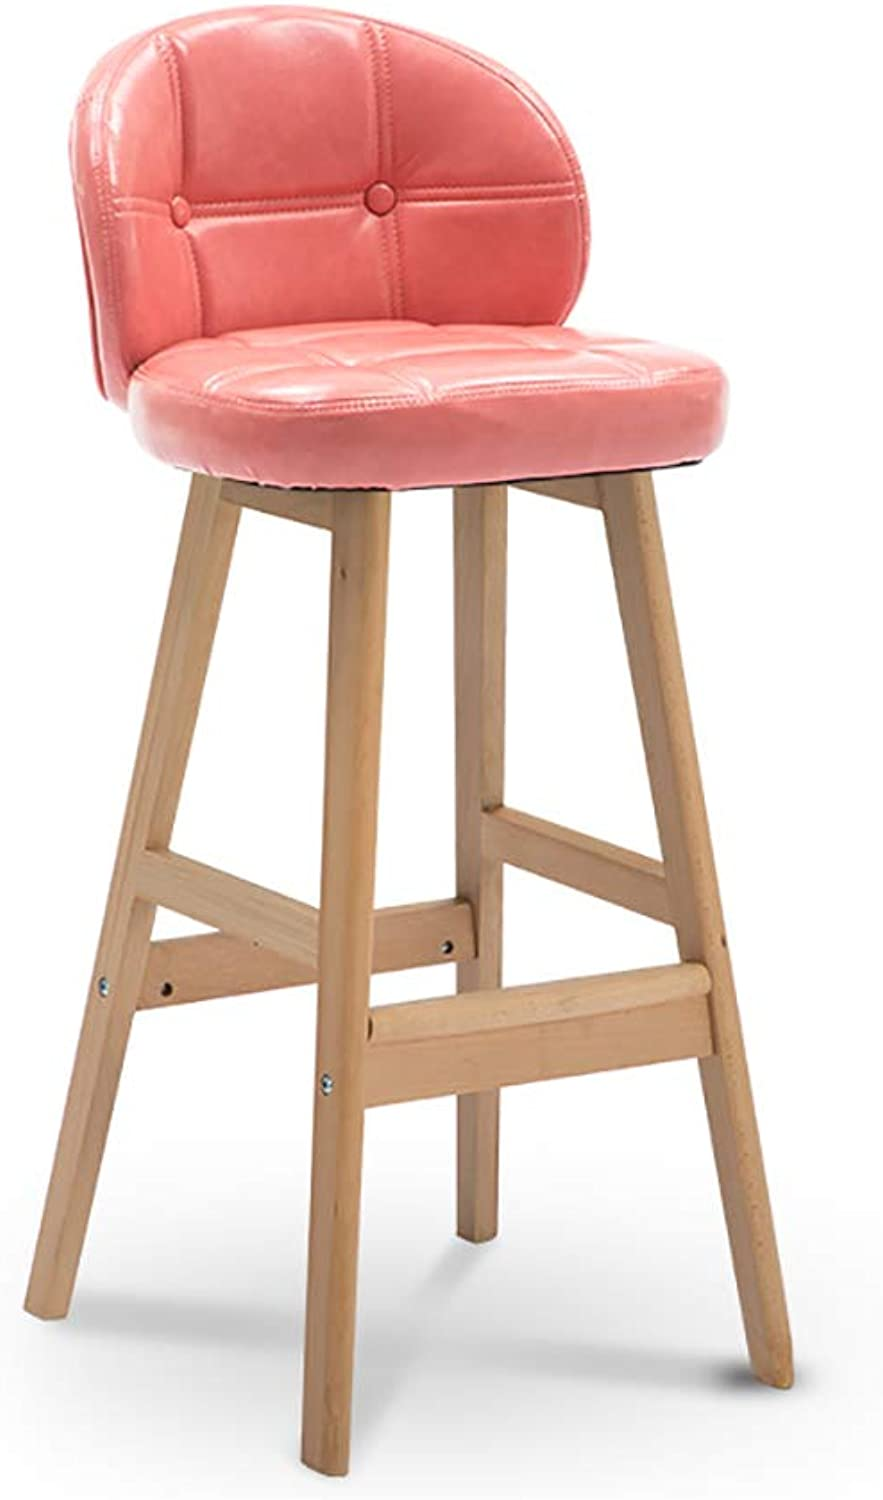 Chair White Simple Bar Stool Chair,High Stool,Dining Chair (68cm) Reception Chairs (color   D)